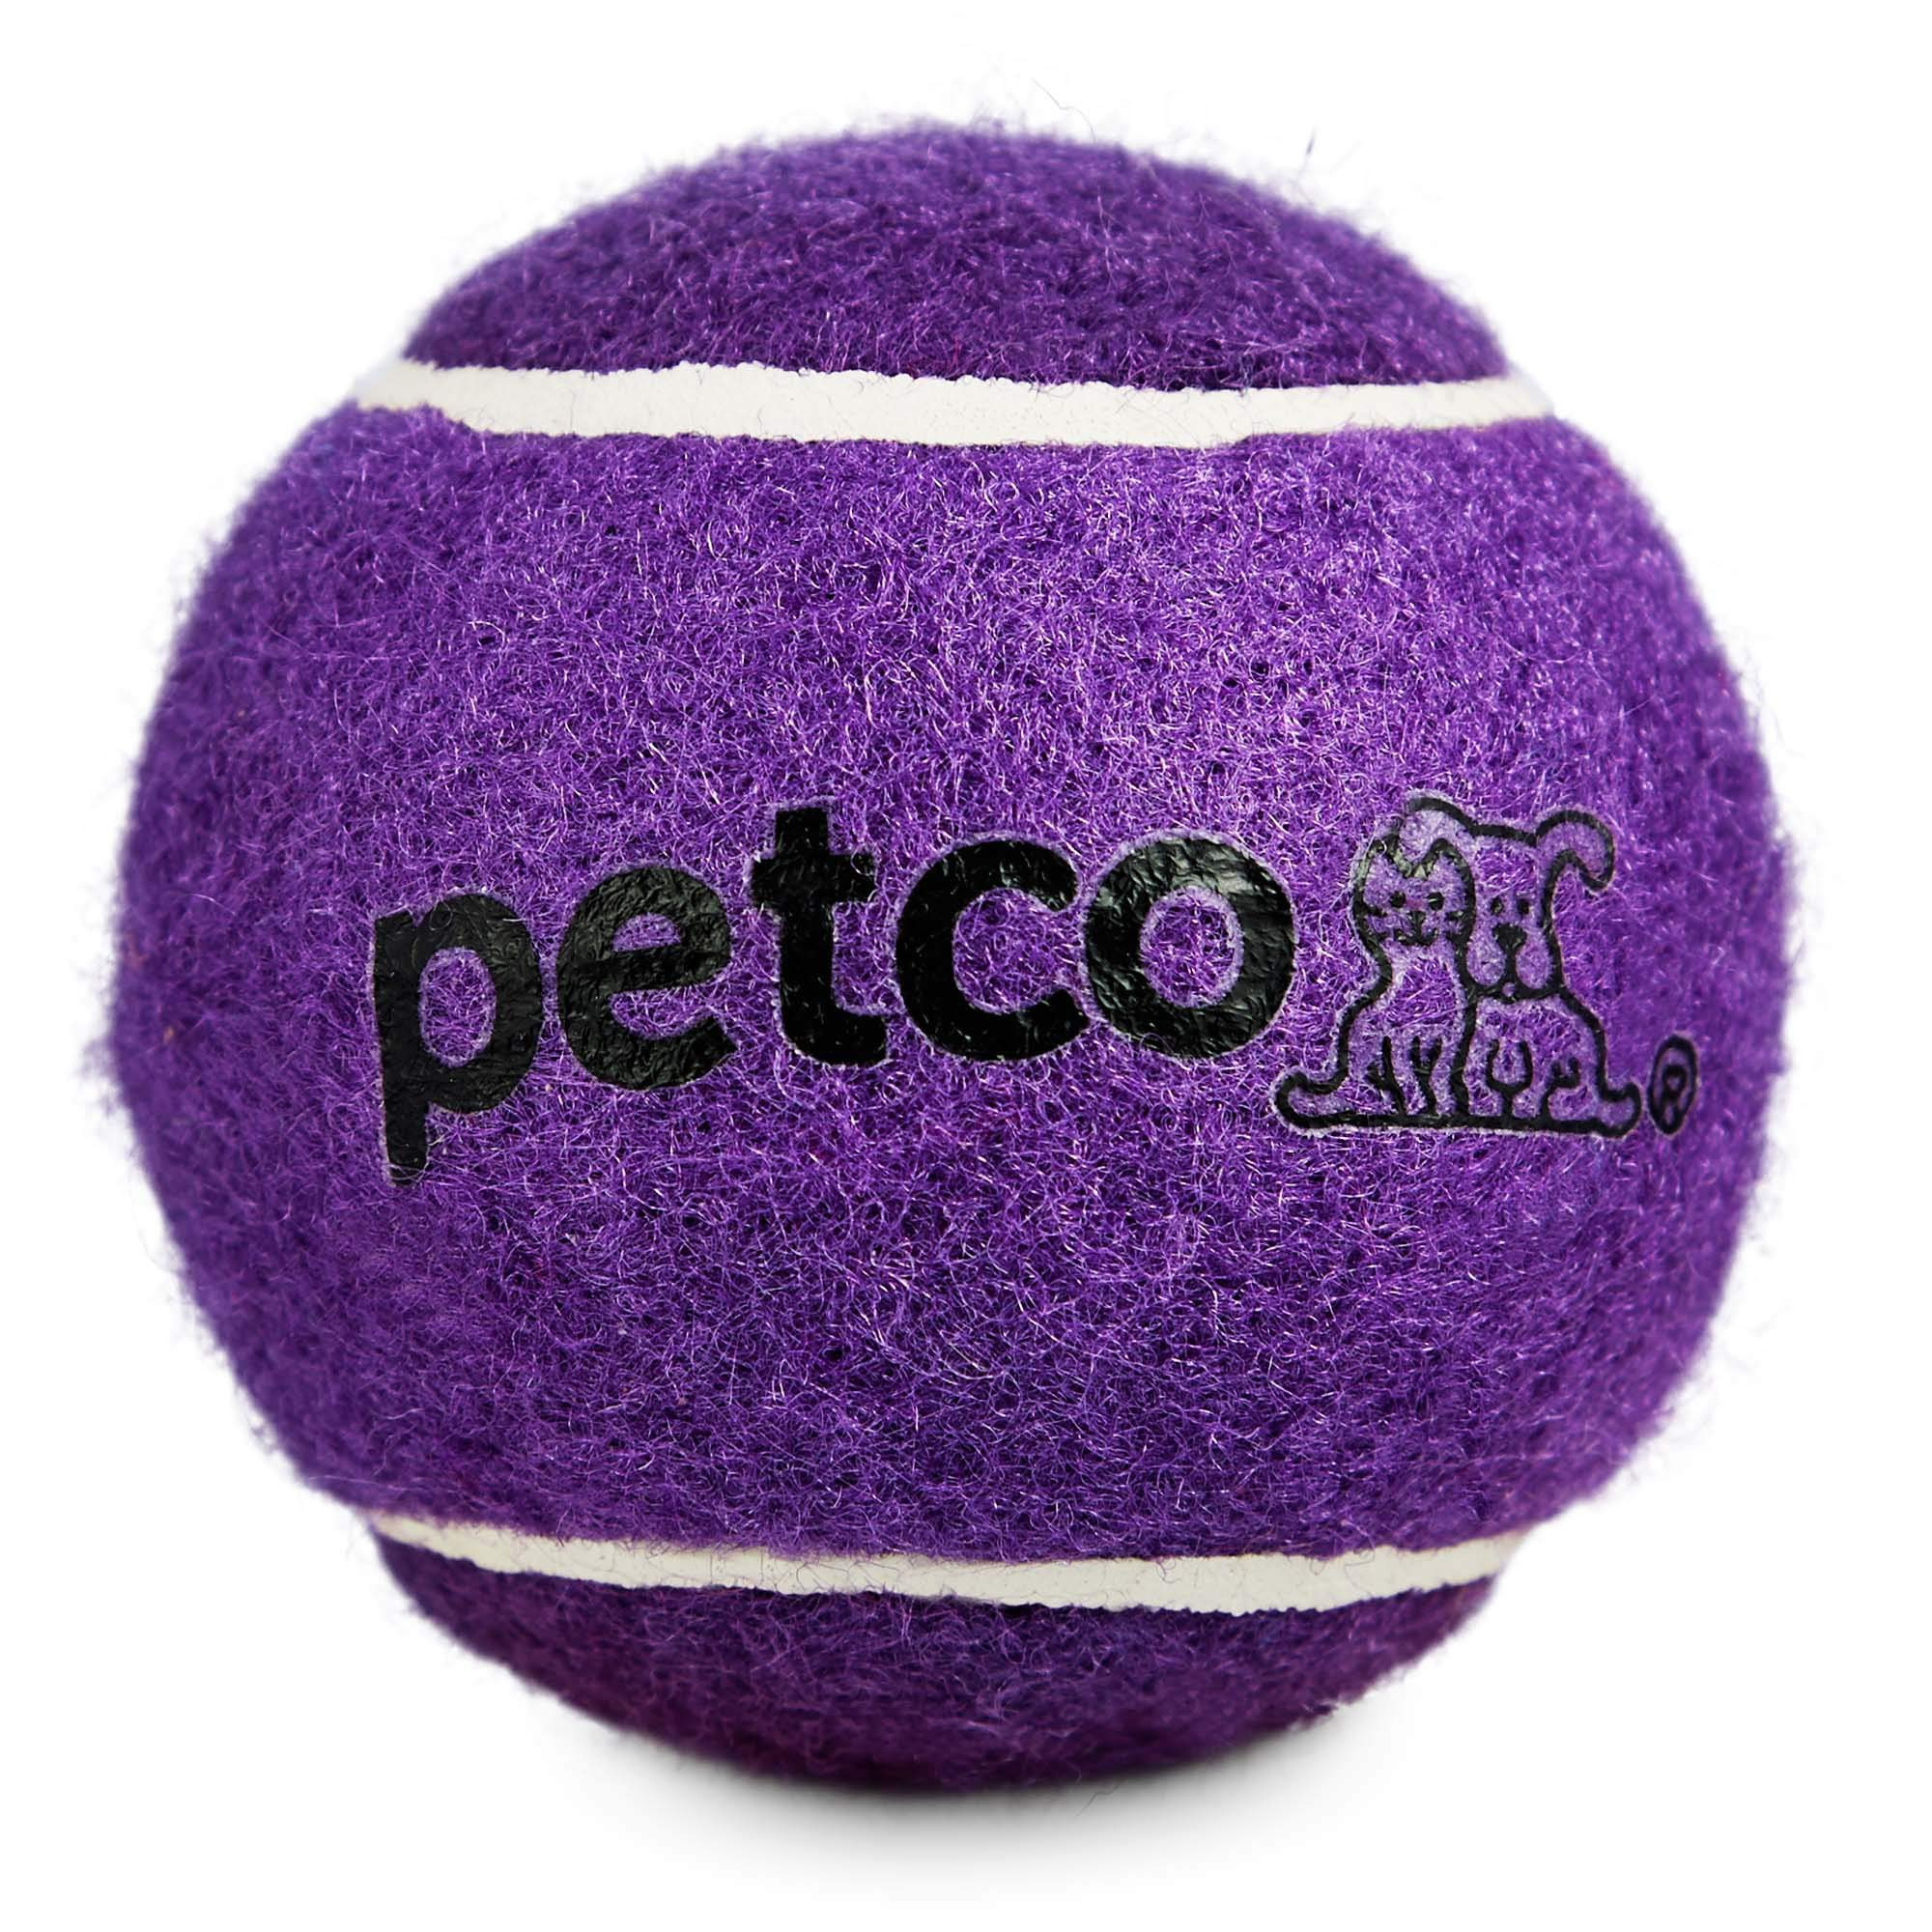 Leaps & Bounds Petco Tennis Ball Dog Toy in Purple, 2.5'', X-Small